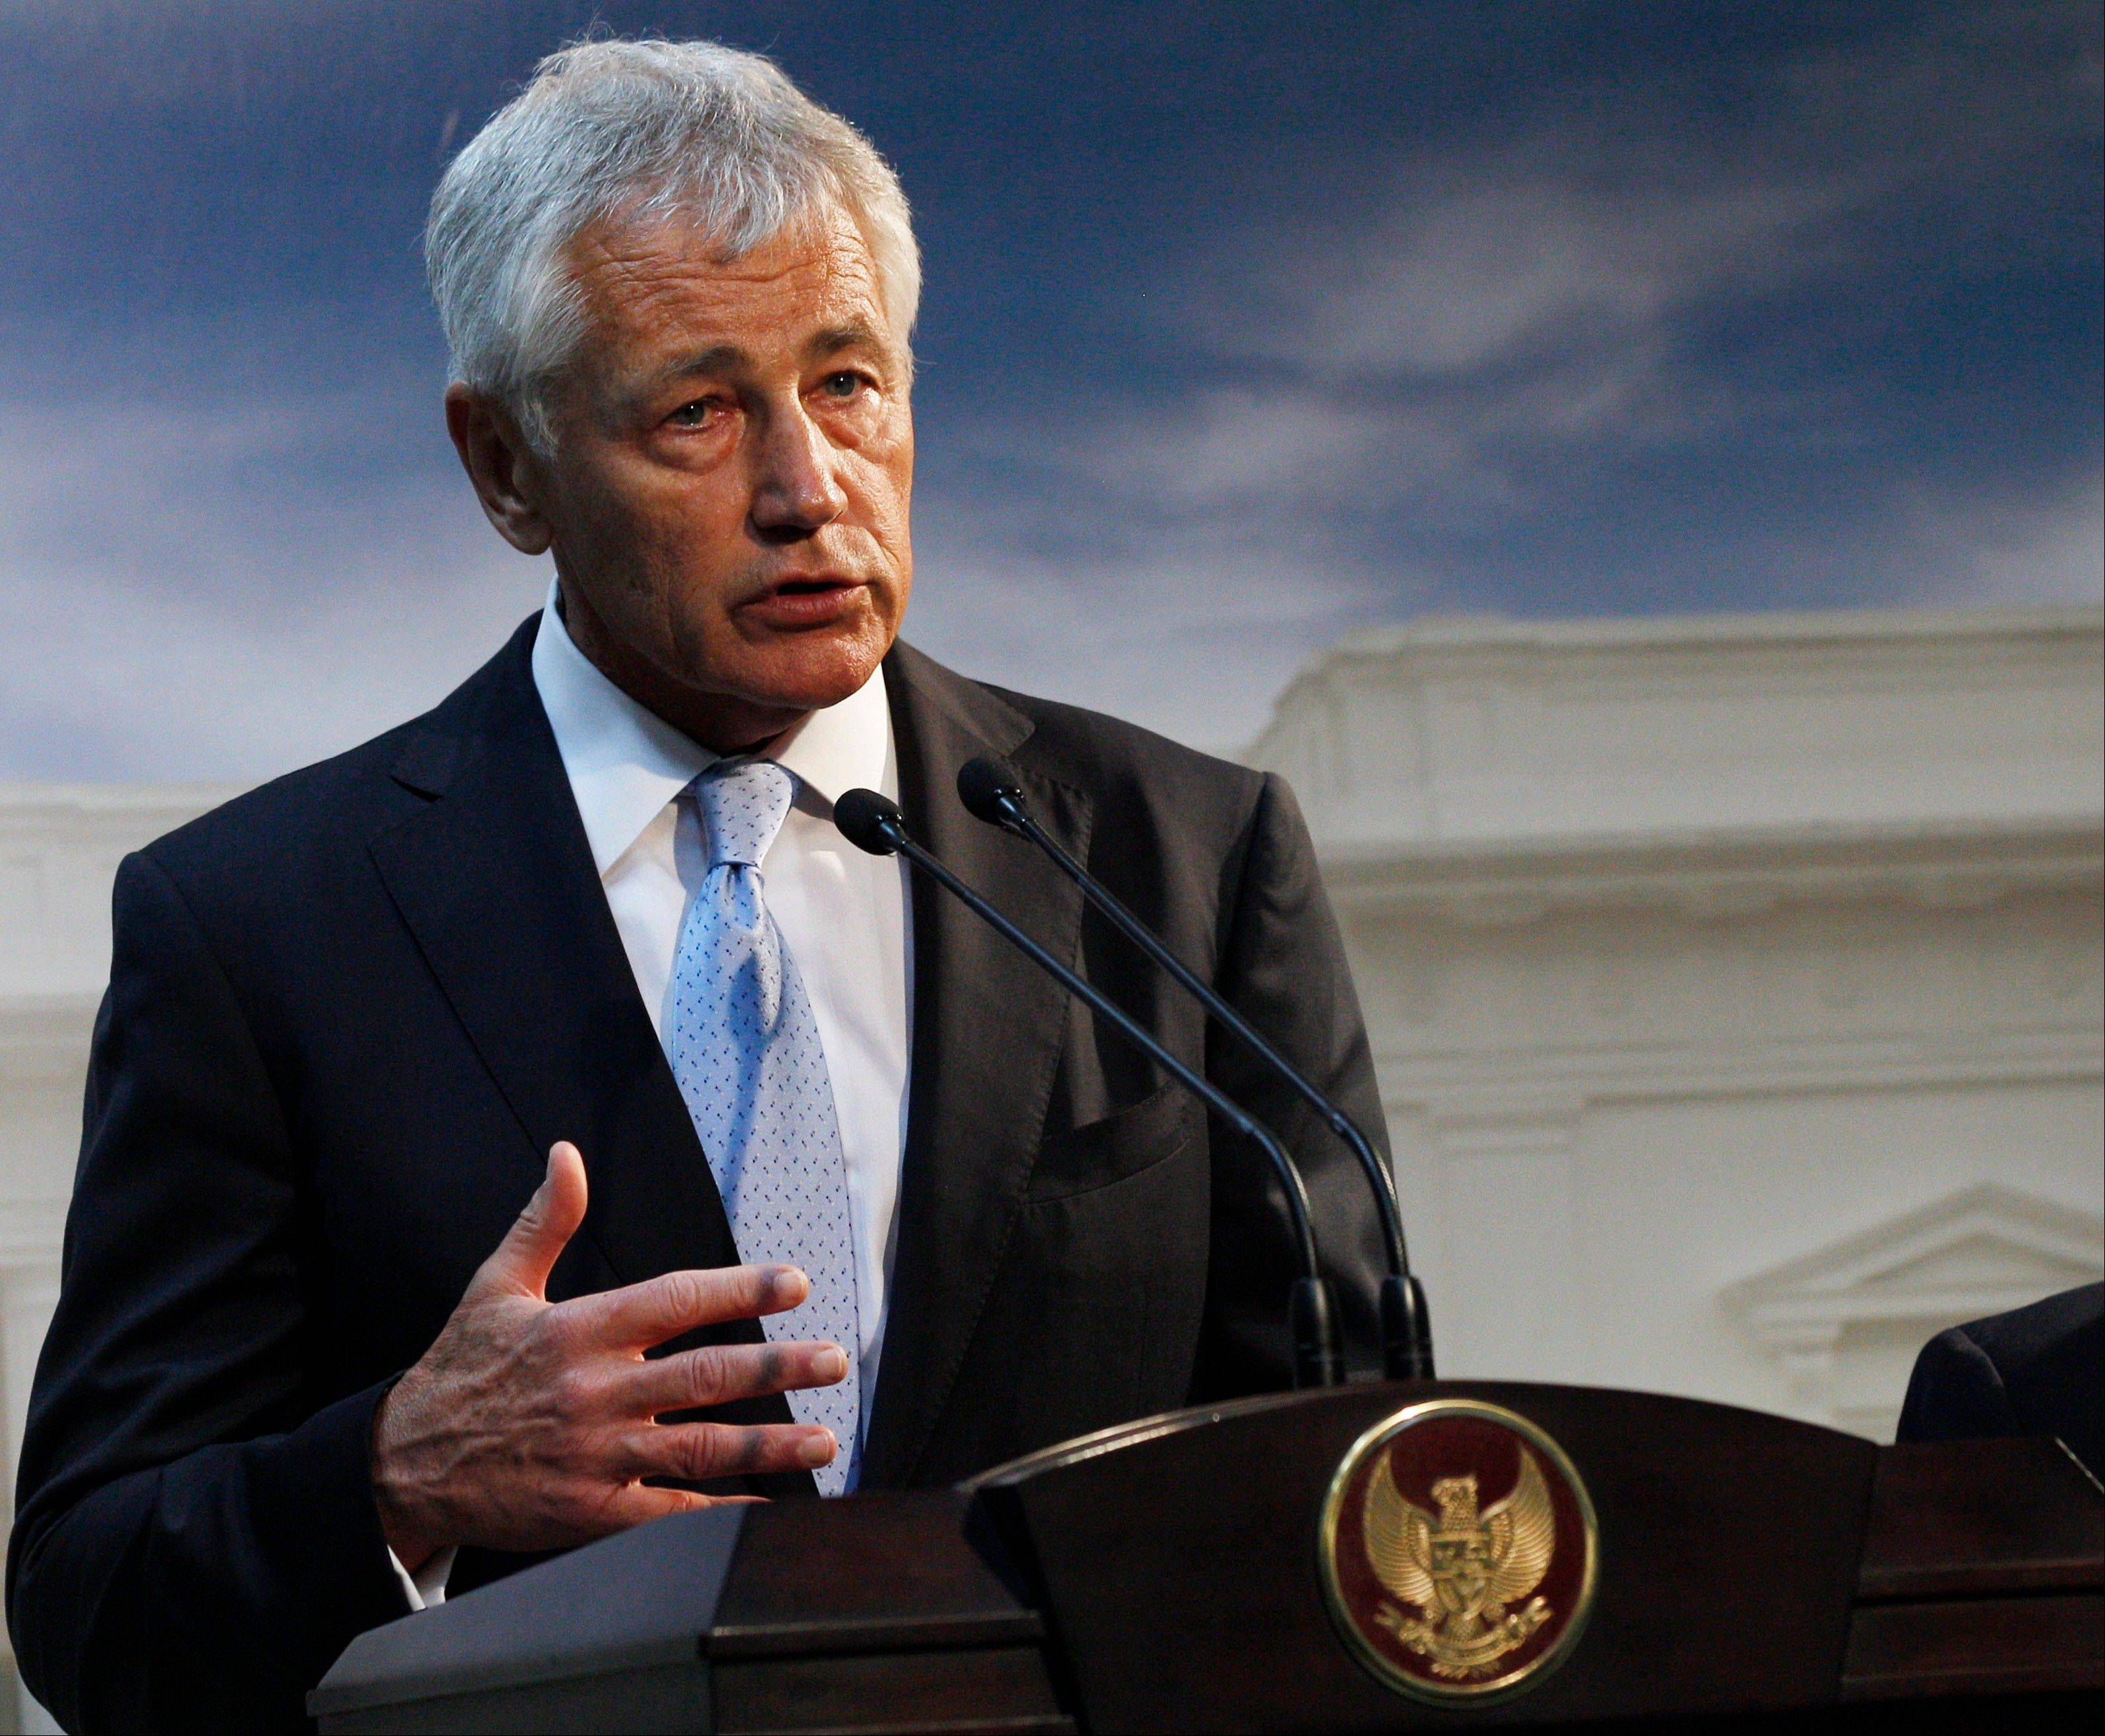 Defense Secretary Chuck Hagel. As the Obama administration insists the Syrian government must be punished, U.S. officials are still grappling with what type of military strike might deter future chemical weapons attacks and trying to assess how President Bashar Assad would respond, two senior administration officials said Wednesday.